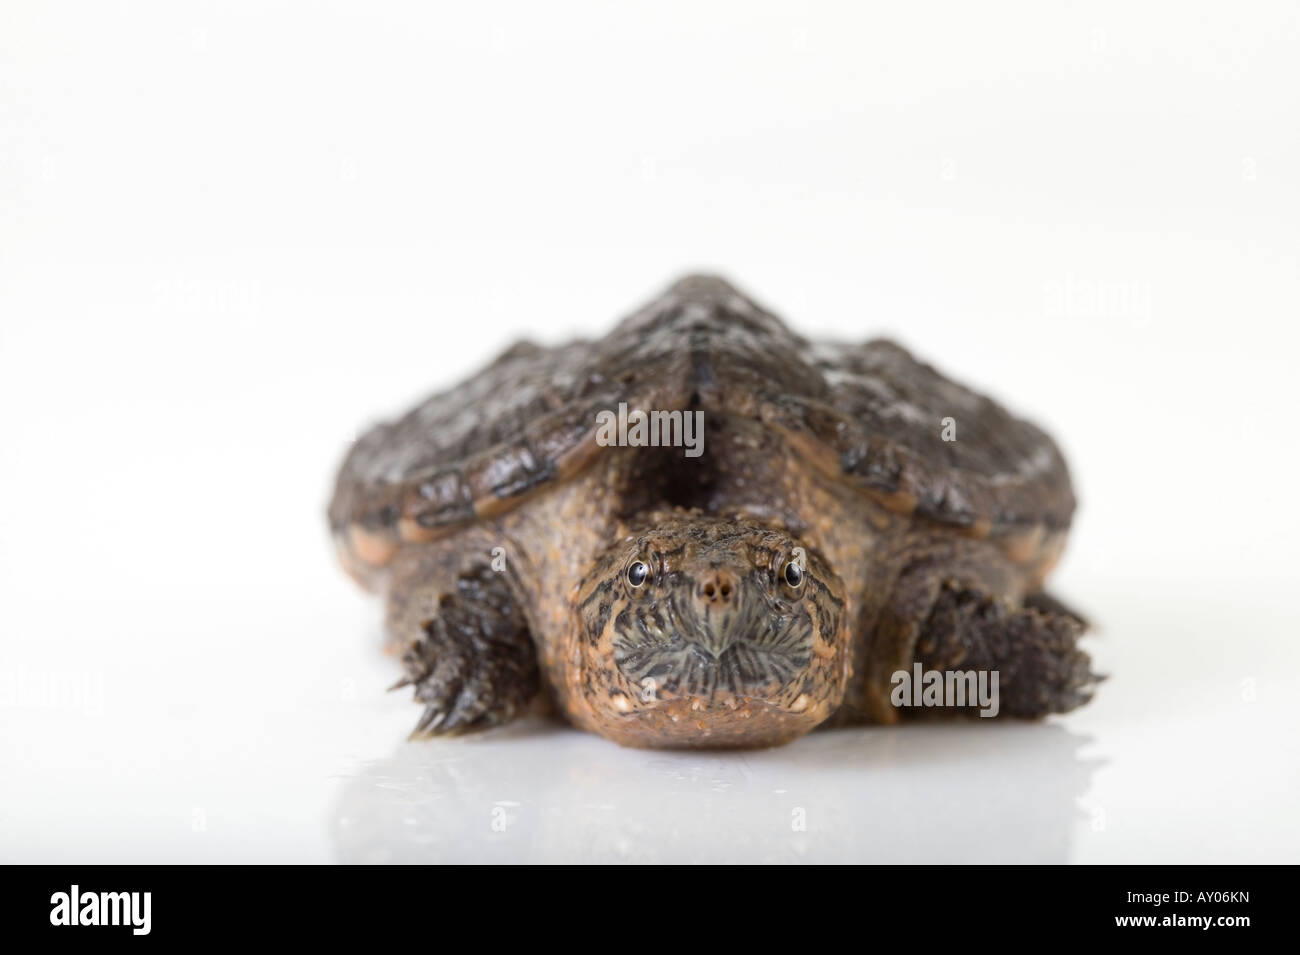 Young small snapping turtle in studio white background Stock Photo